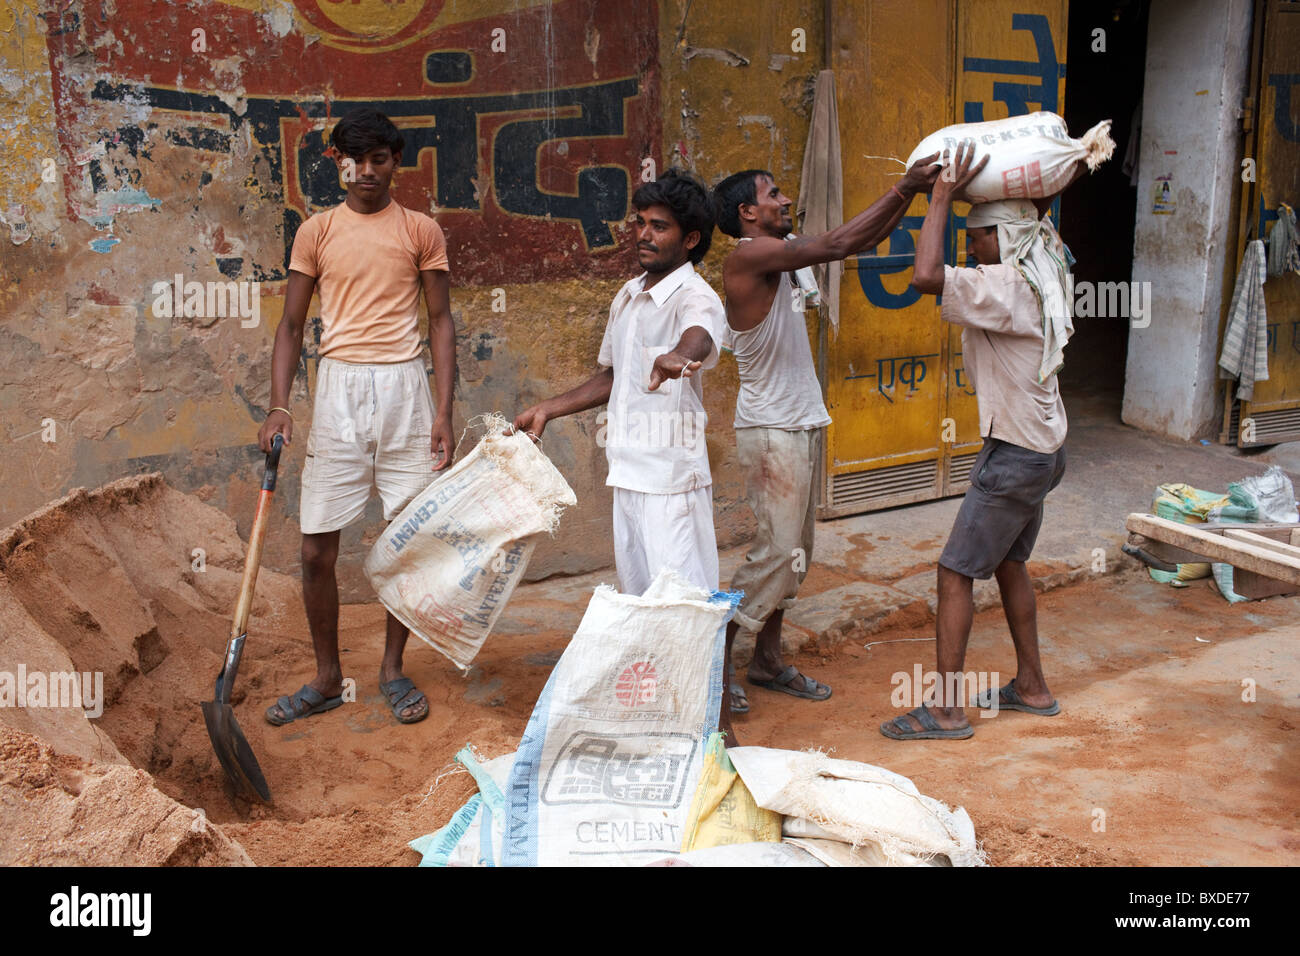 Men do a physical work loading sand into sacks in Old Delhi, capital of India. - Stock Image